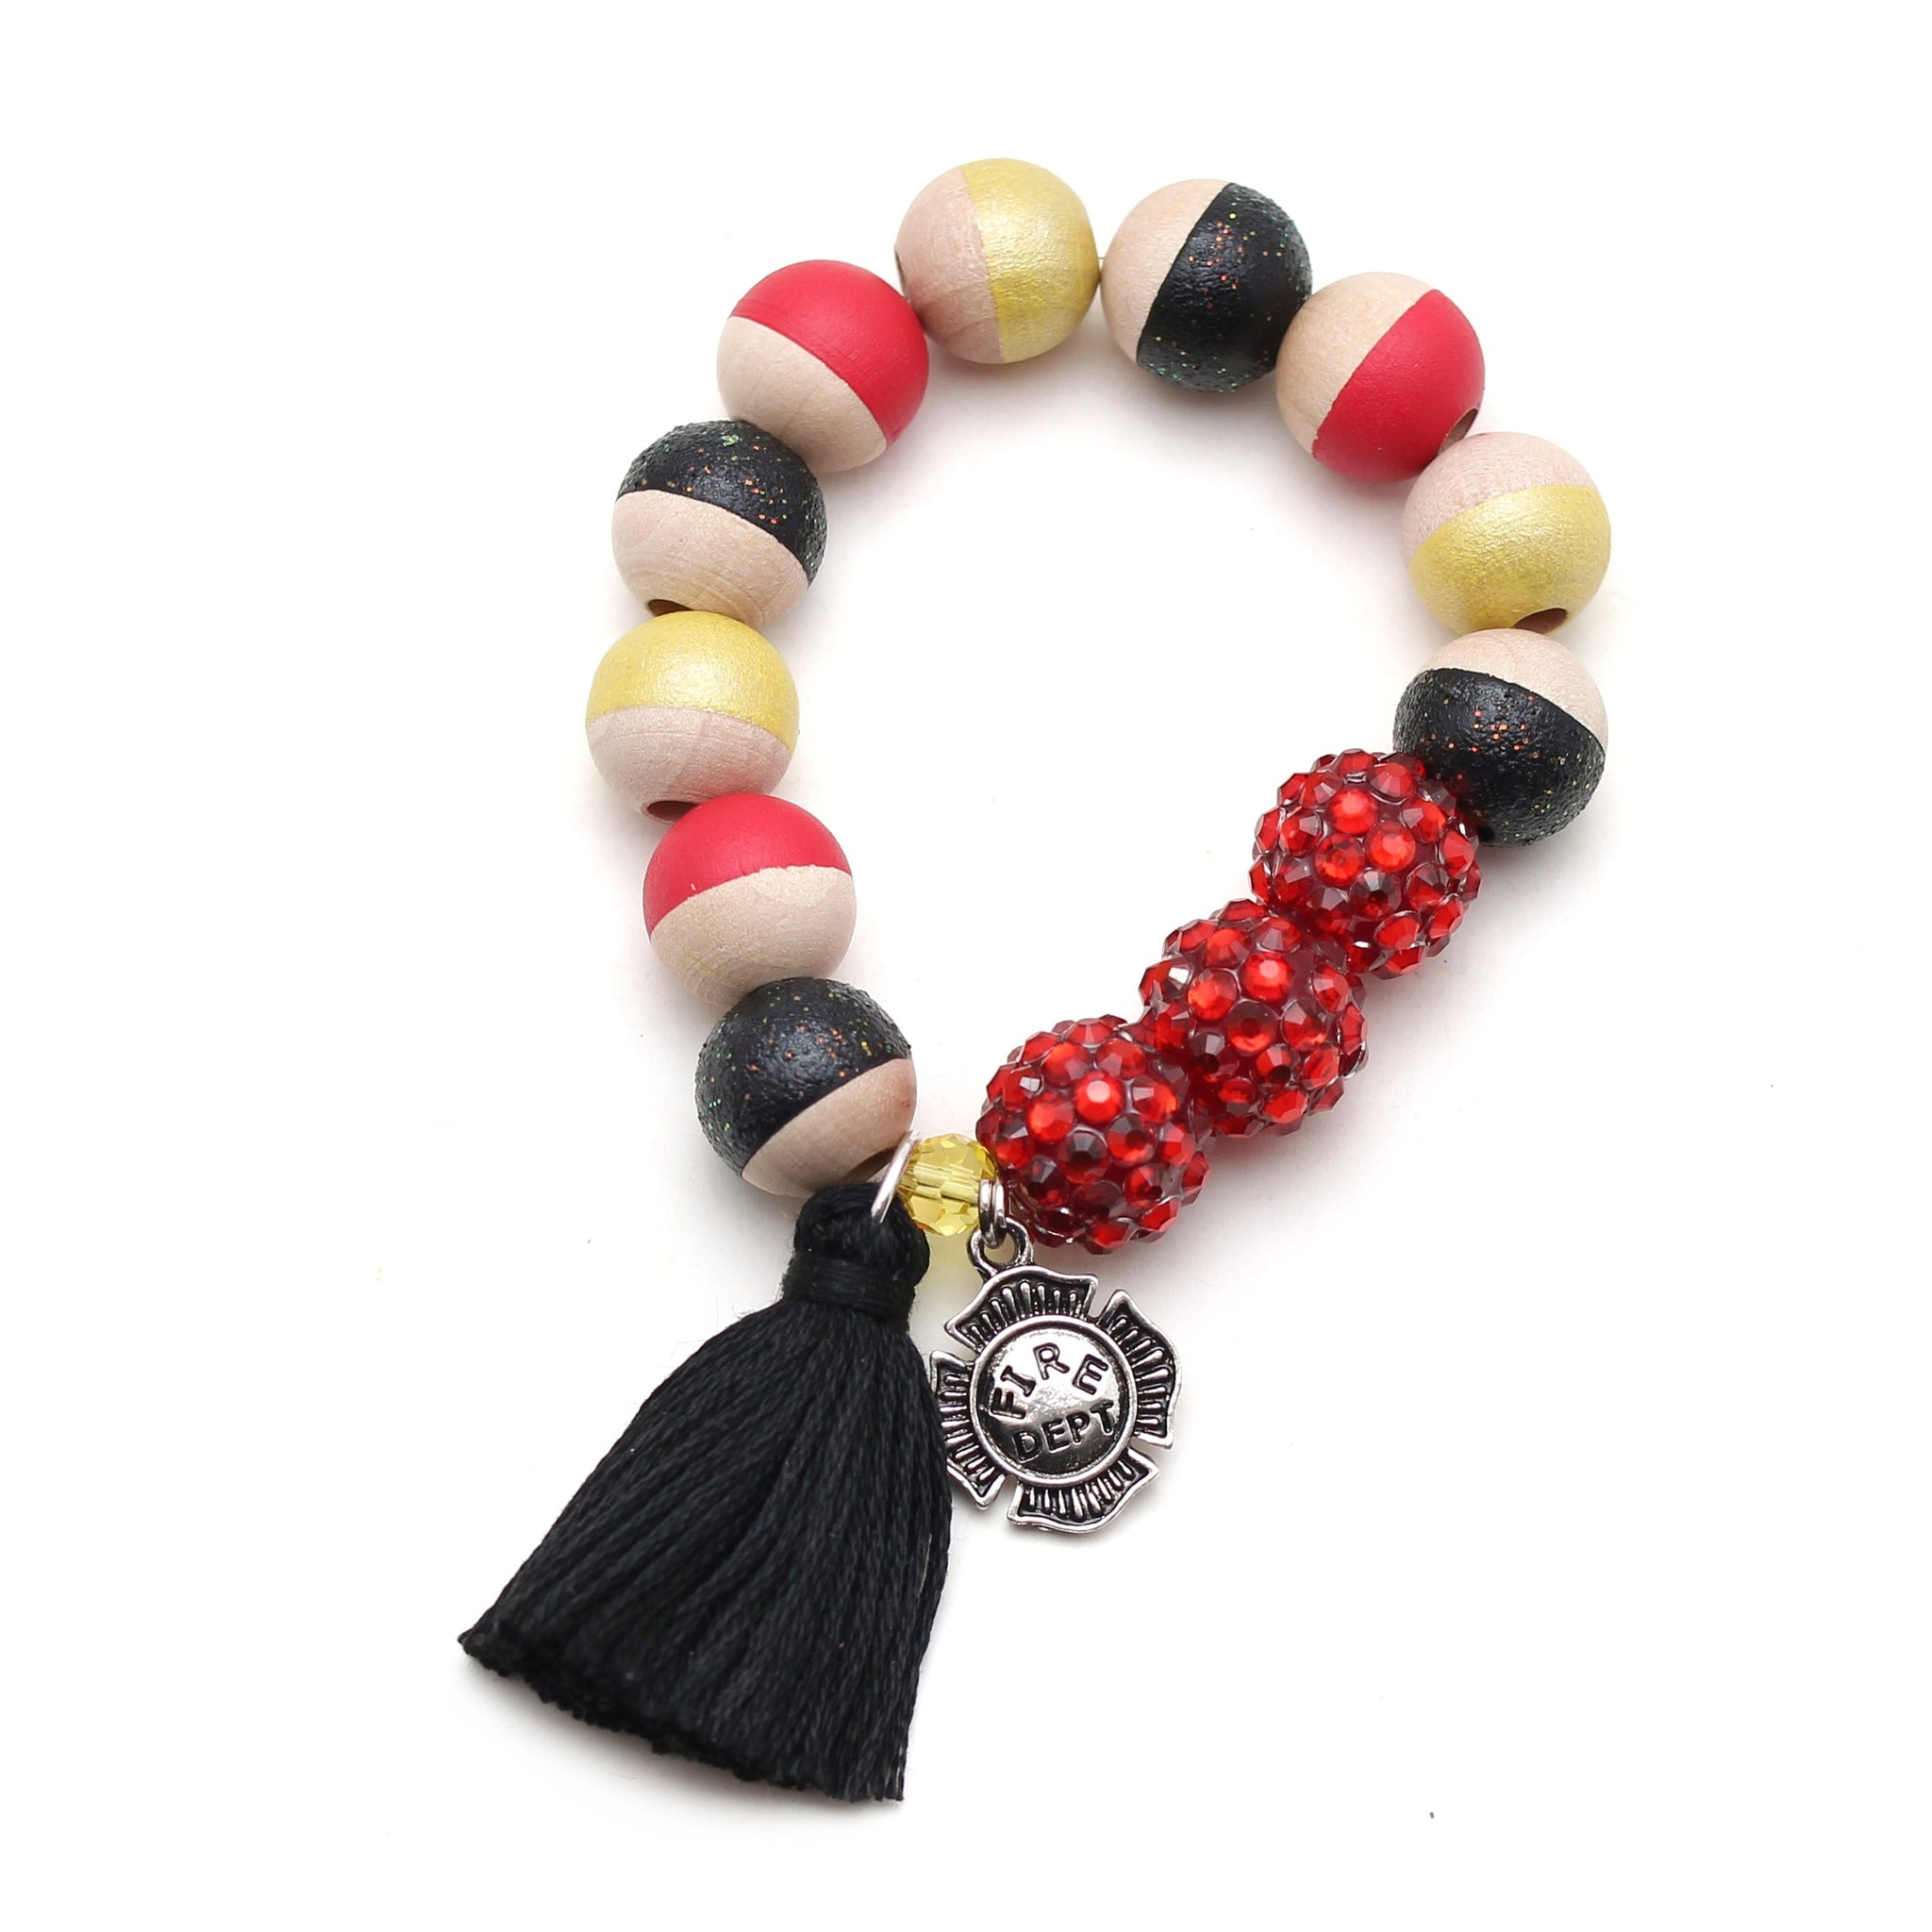 Fire Department Charm and Tassel Hand Painted Bracelet